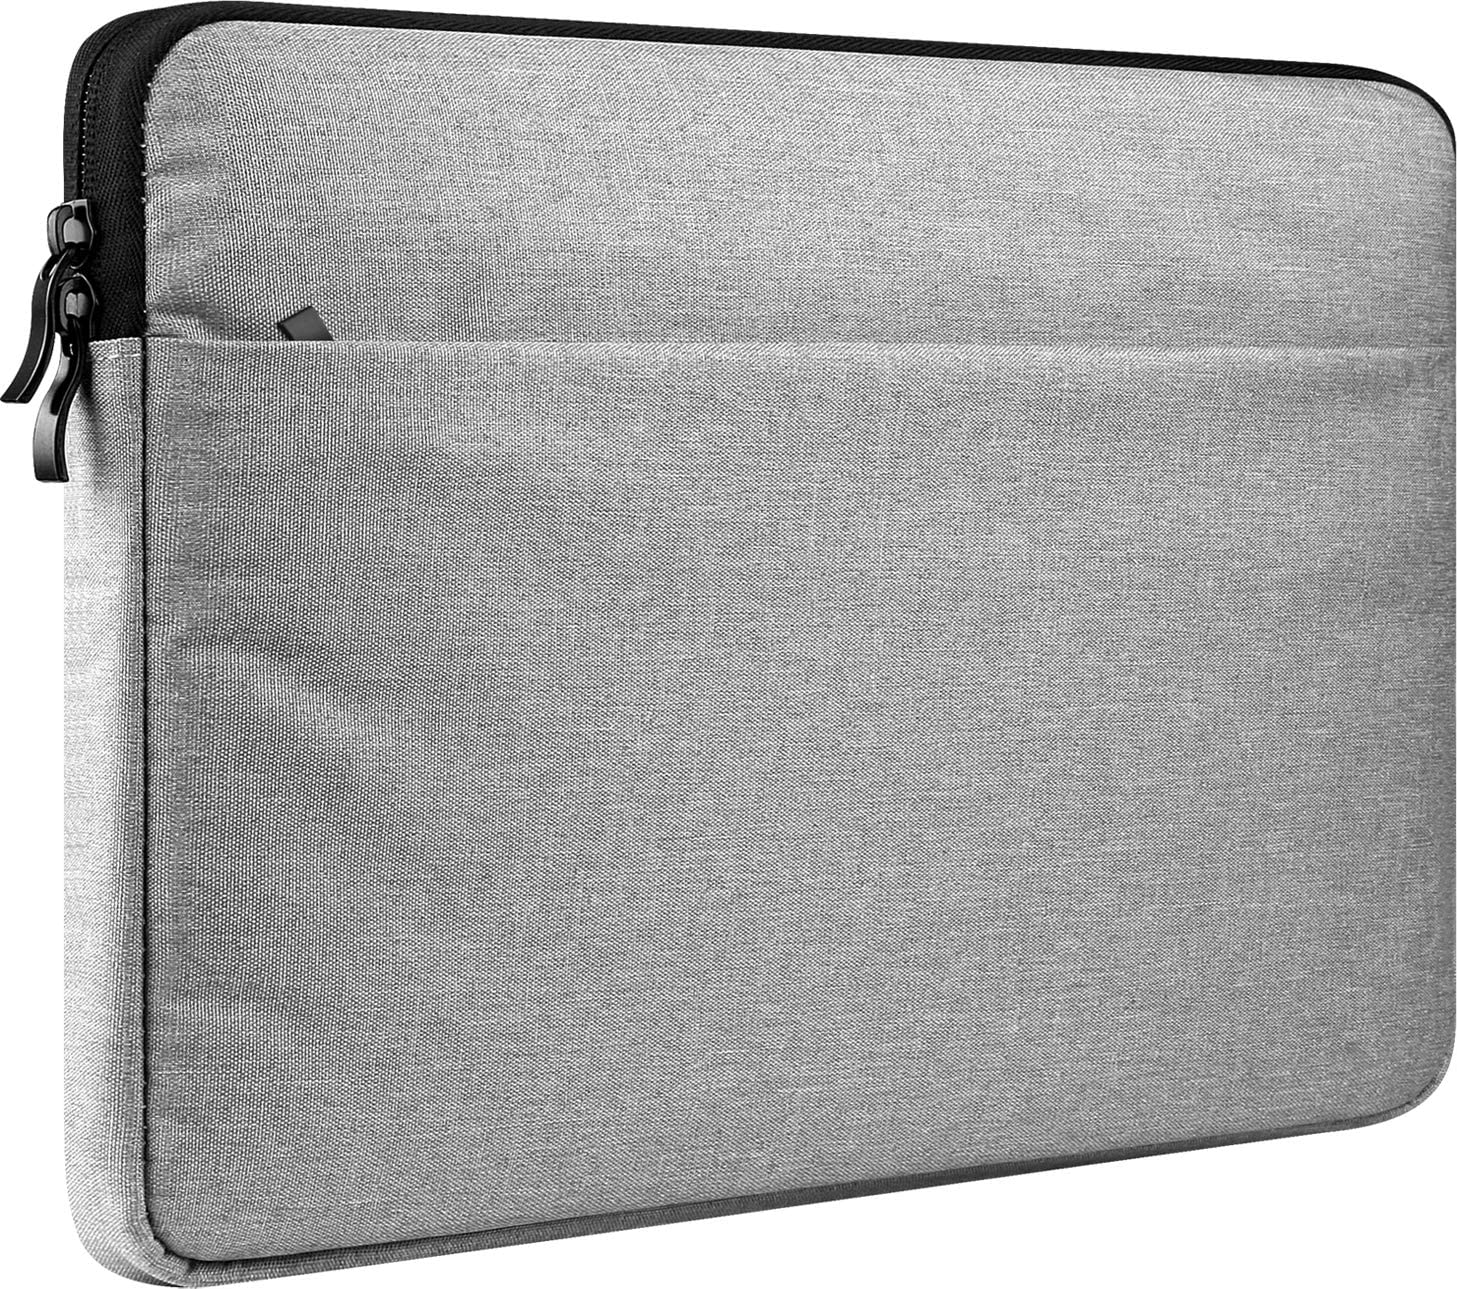 """CCPK 13-14 inch Laptop Sleeve Compatible for 13.3"""" MacBook Air A1466 A1369 Pro A1278 Retina A1425 A1502 Hp Spectre 13.5 Microsoft Surface Laptop 14"""" Dell Latitude 7490 Carrying Case Bag Grey"""